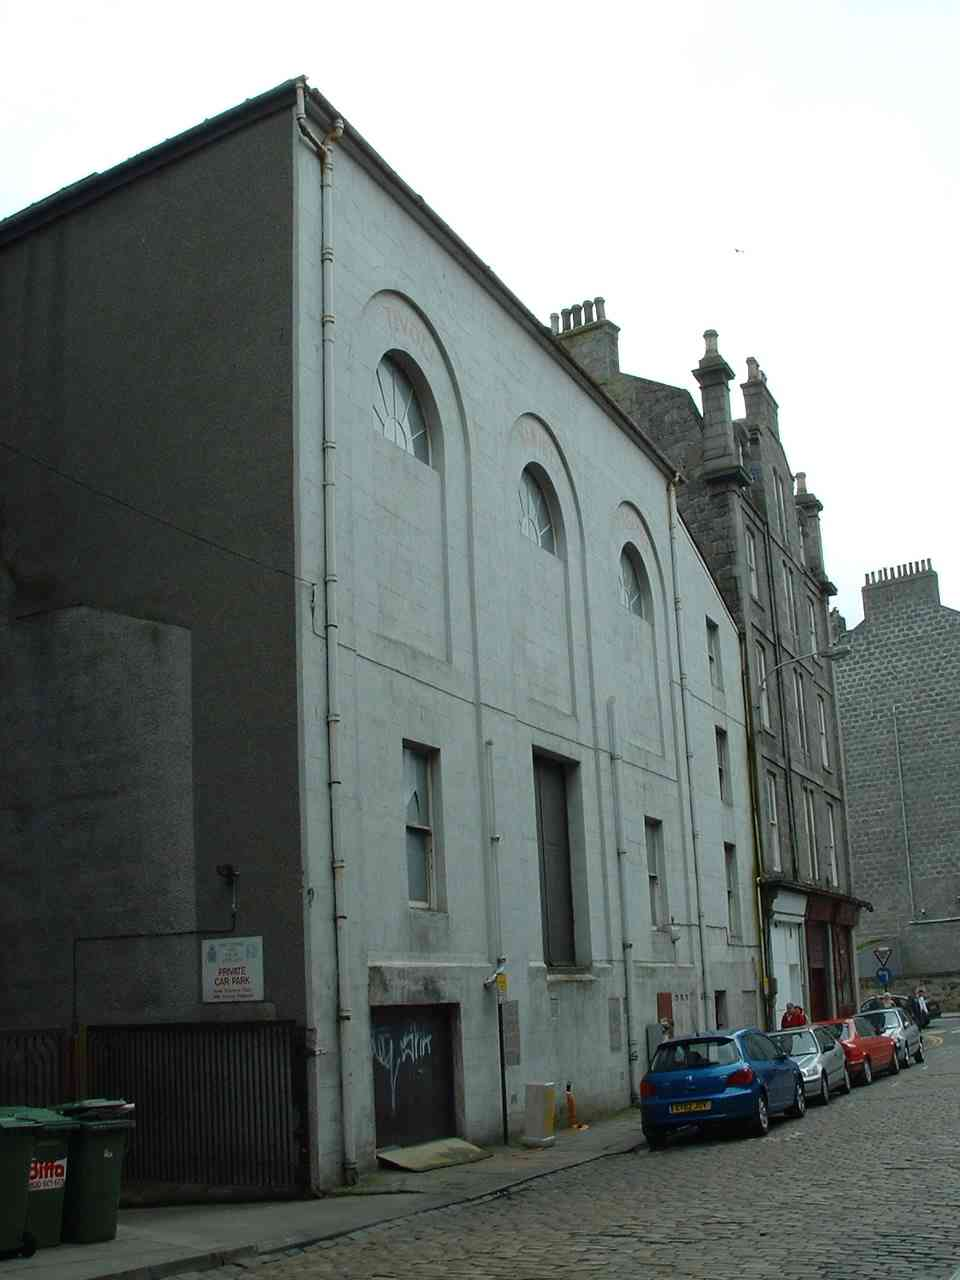 Tivoli Theatre Edinburgh Stagedoor Archive 2 Scottish Music Hall Variety Theatre Society